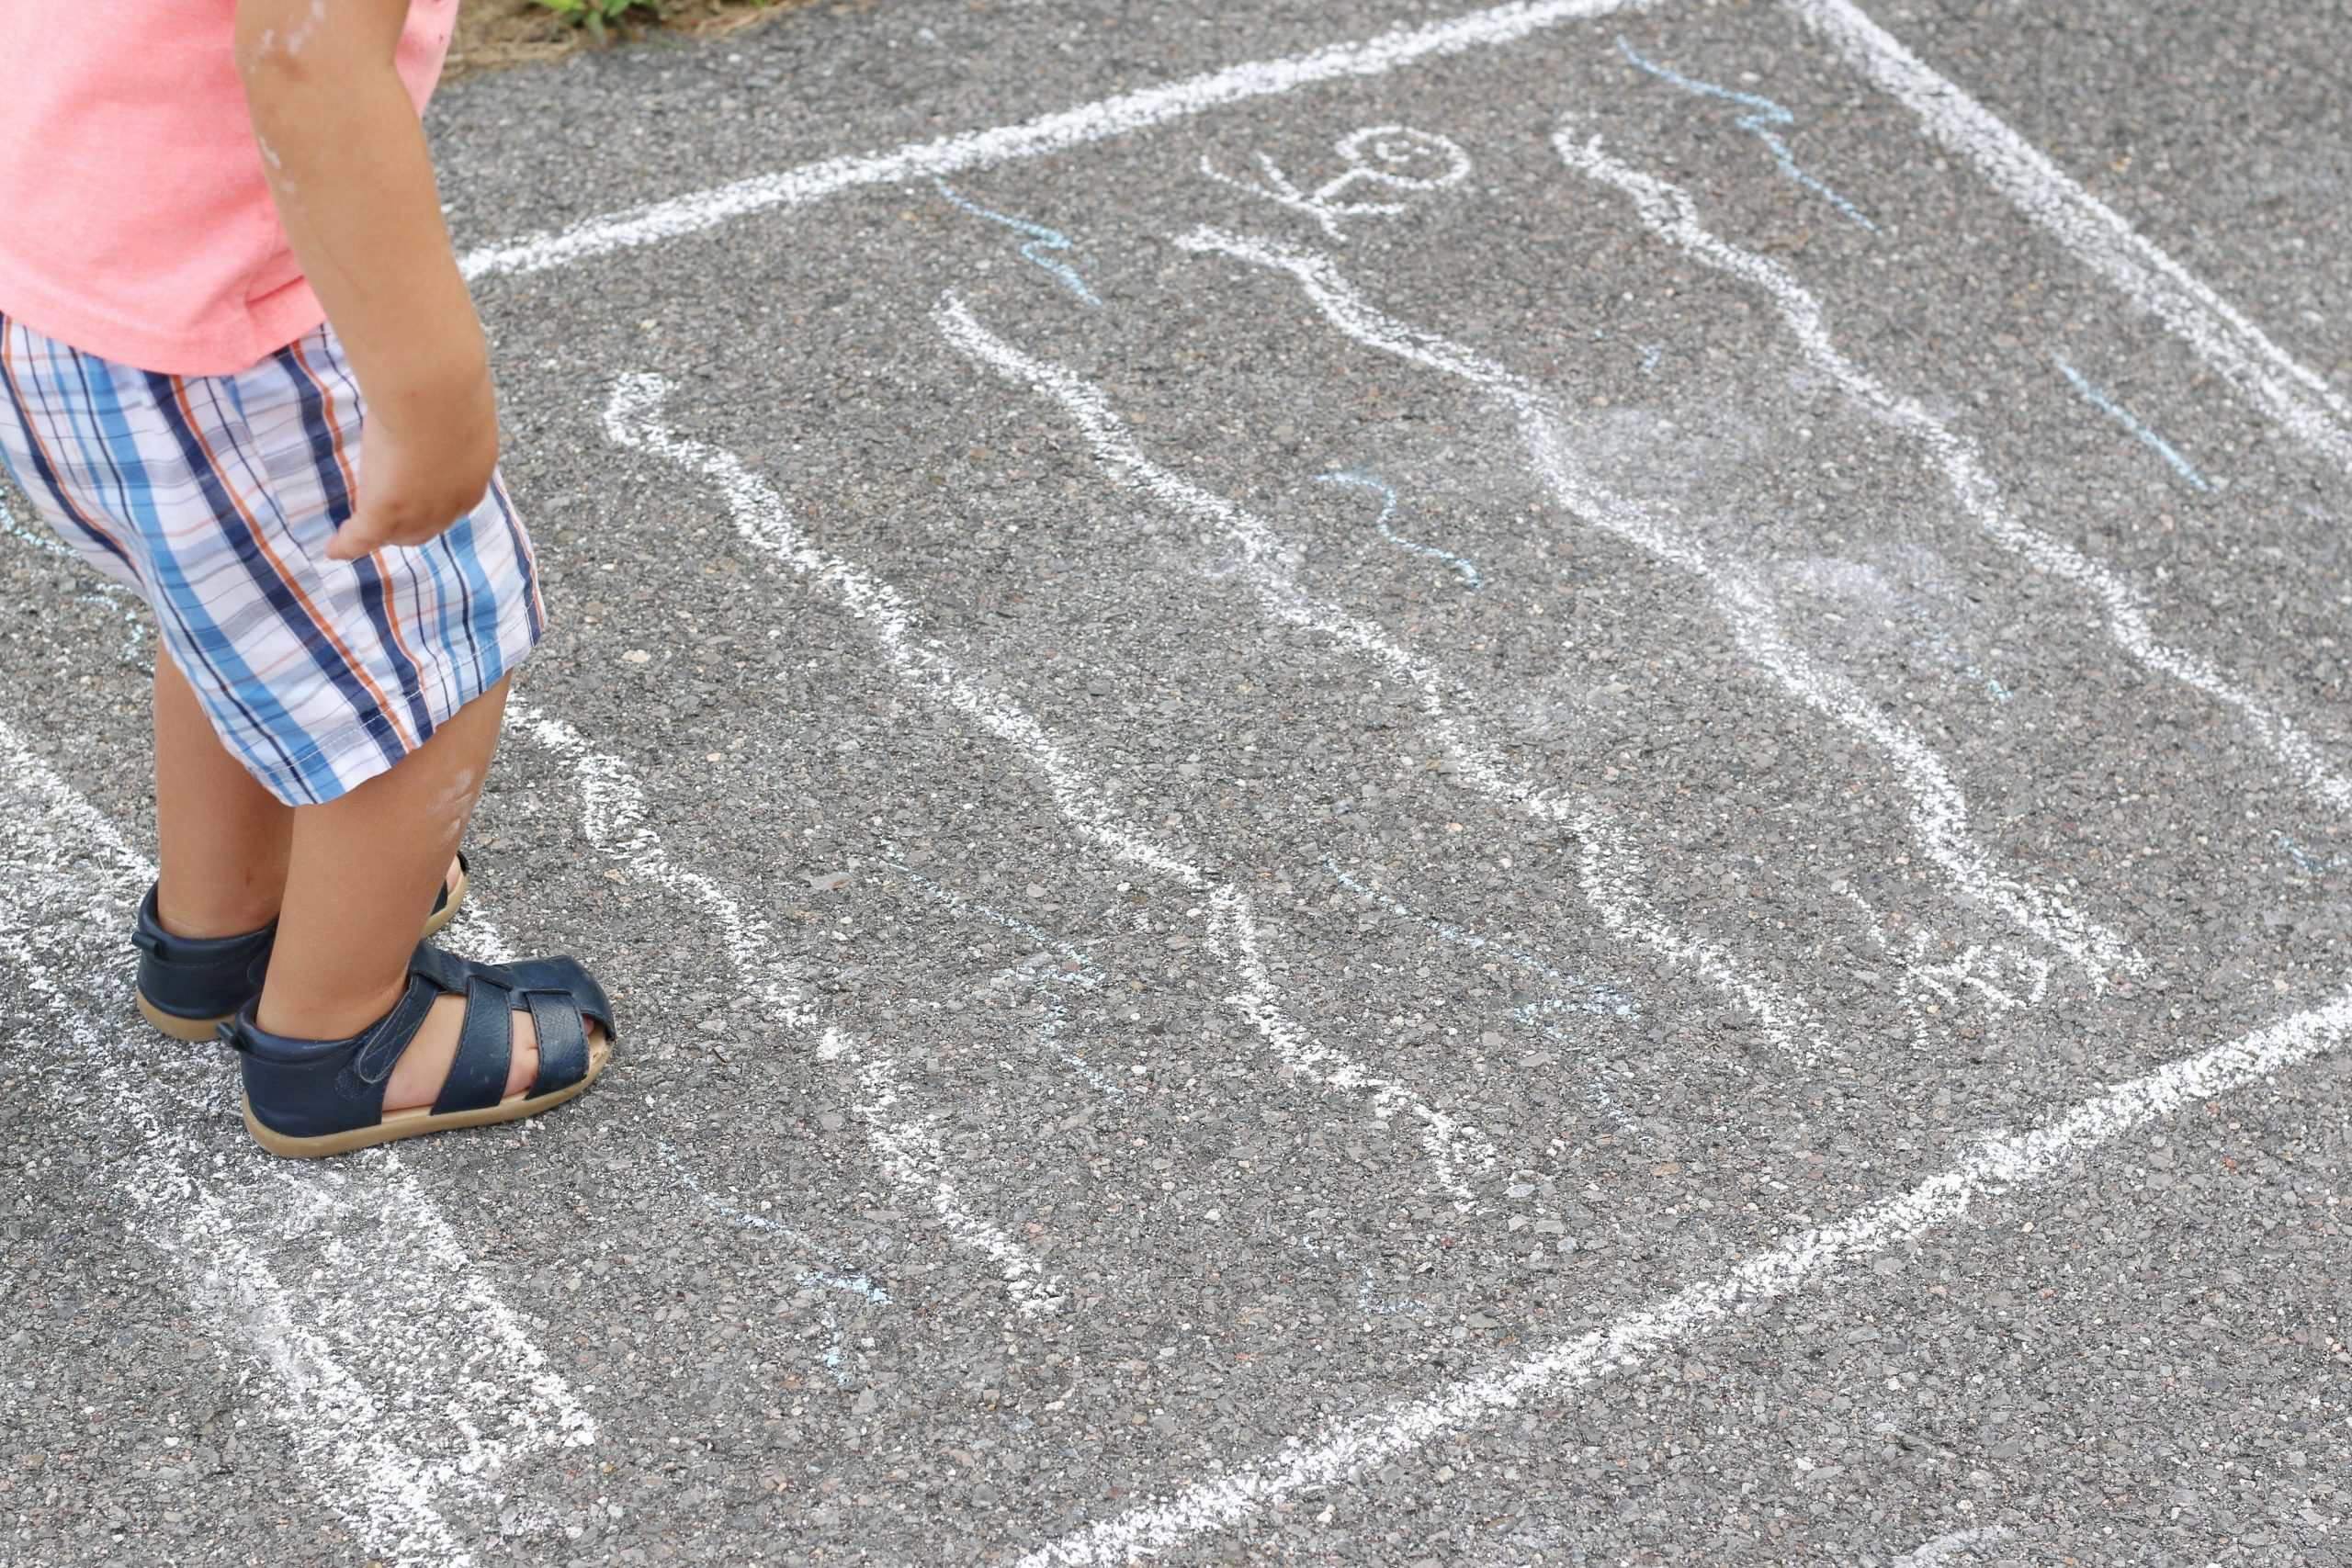 Distance Pool Jumping Game using Chalk